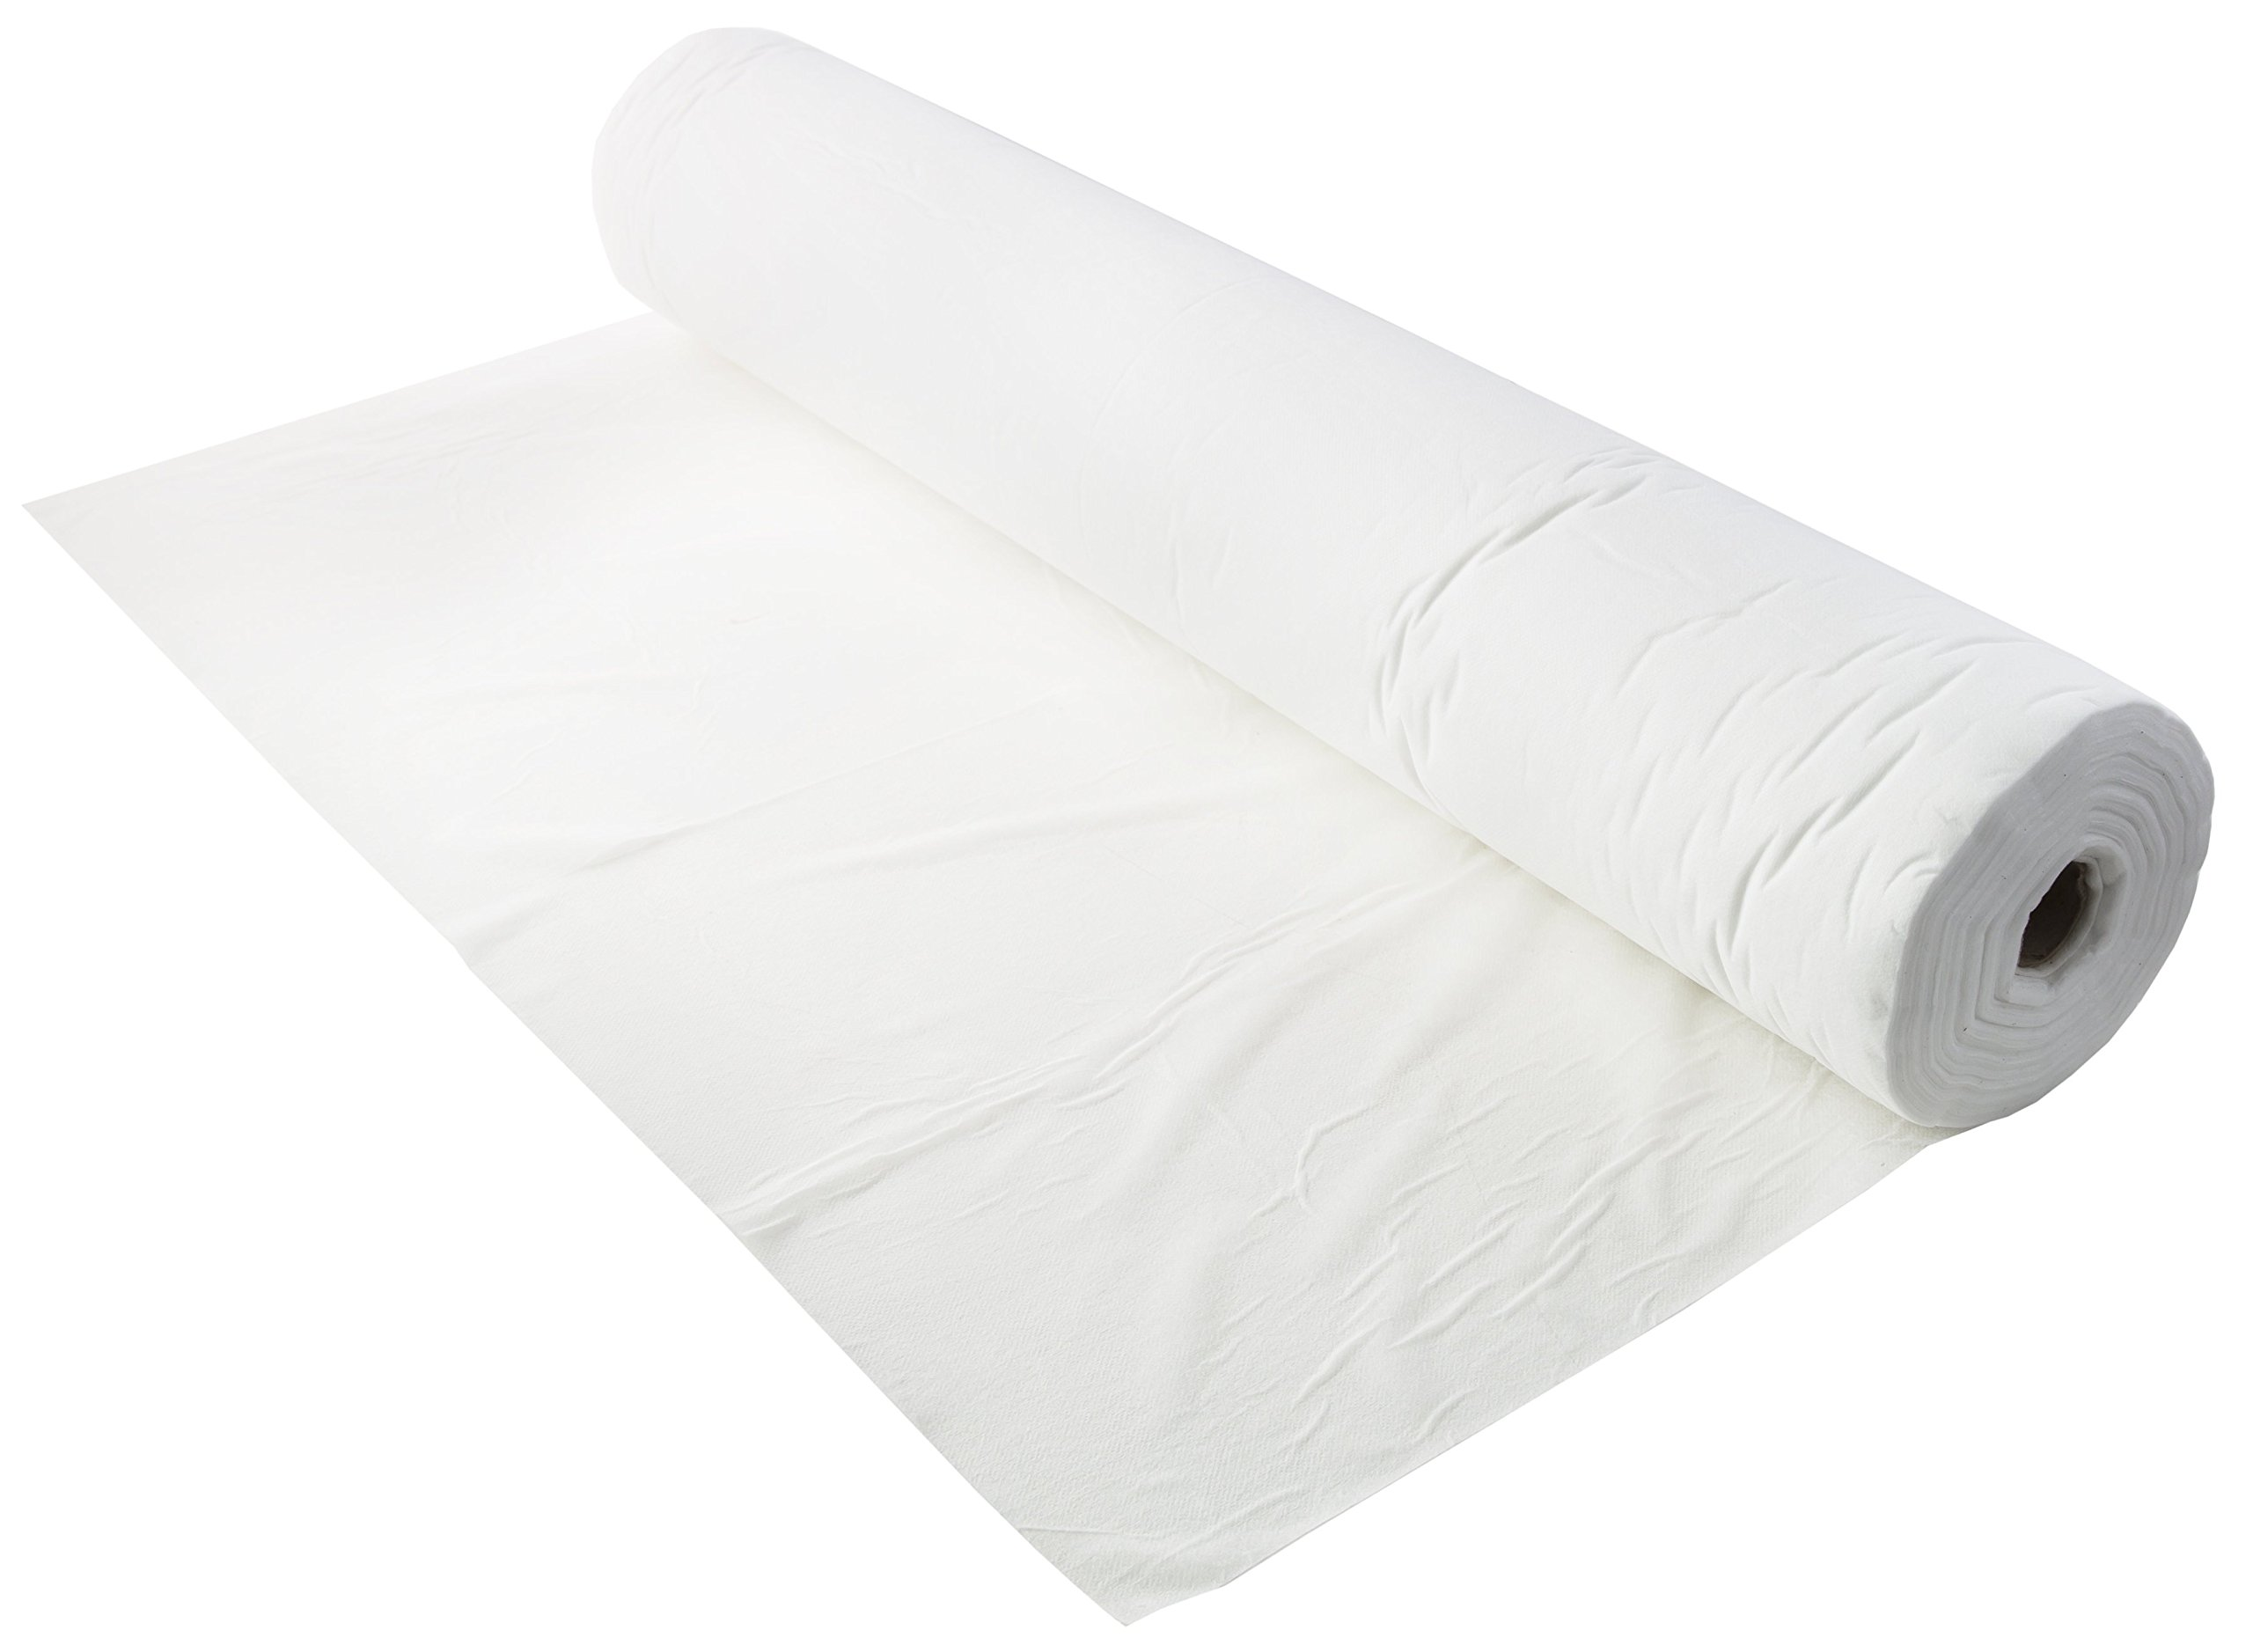 (6 Rolls) Disposable Non-Woven Bed Sheet | 50 Perforated Sheets with Precut Face Holes (31.5'' X 75'' Per Sheet) | Hygienic Protection for Massage, Spa, Beauty, or Tattoo Table | (White)